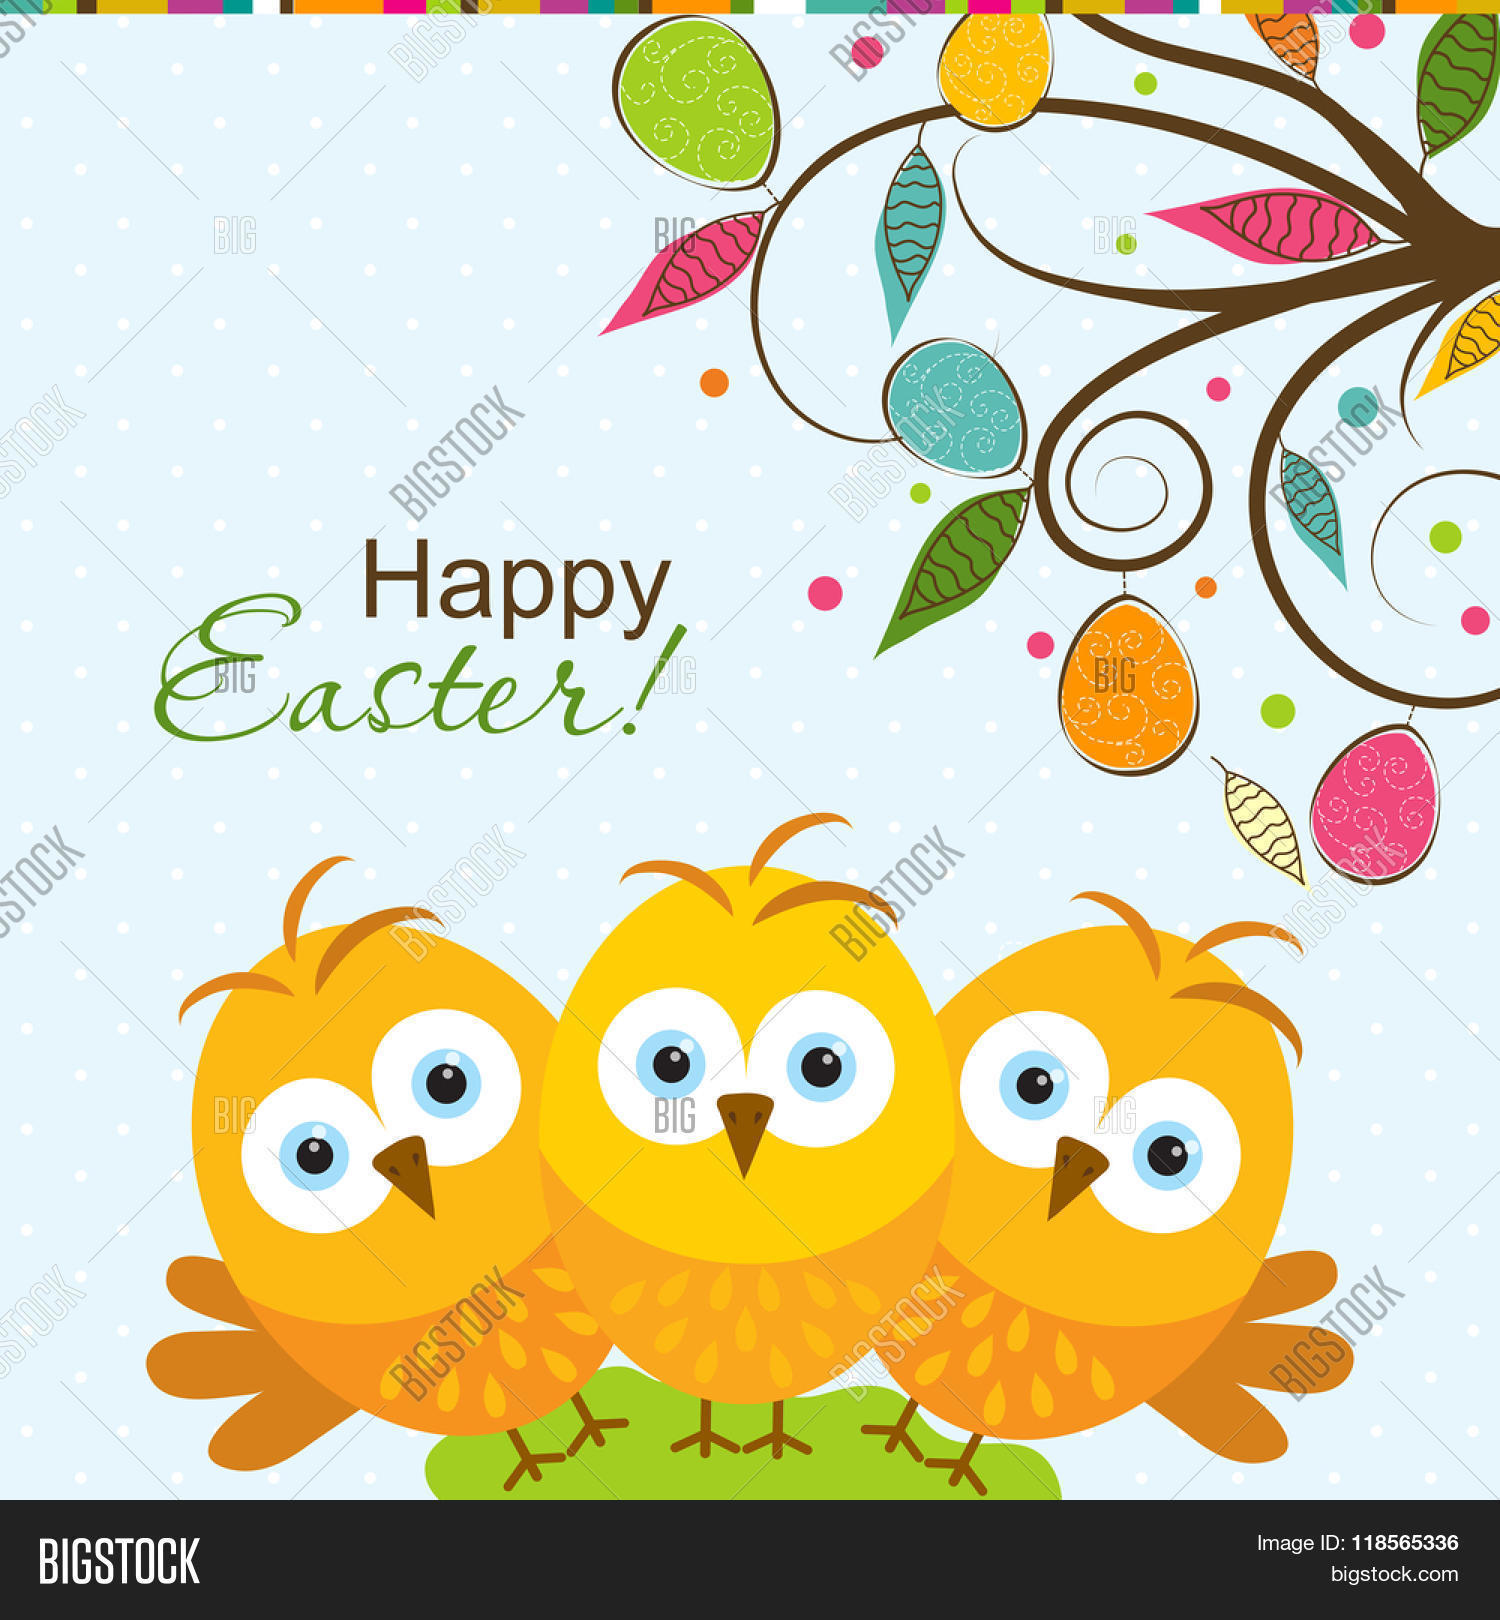 Template Easter Vector Photo Free Trial Bigstock